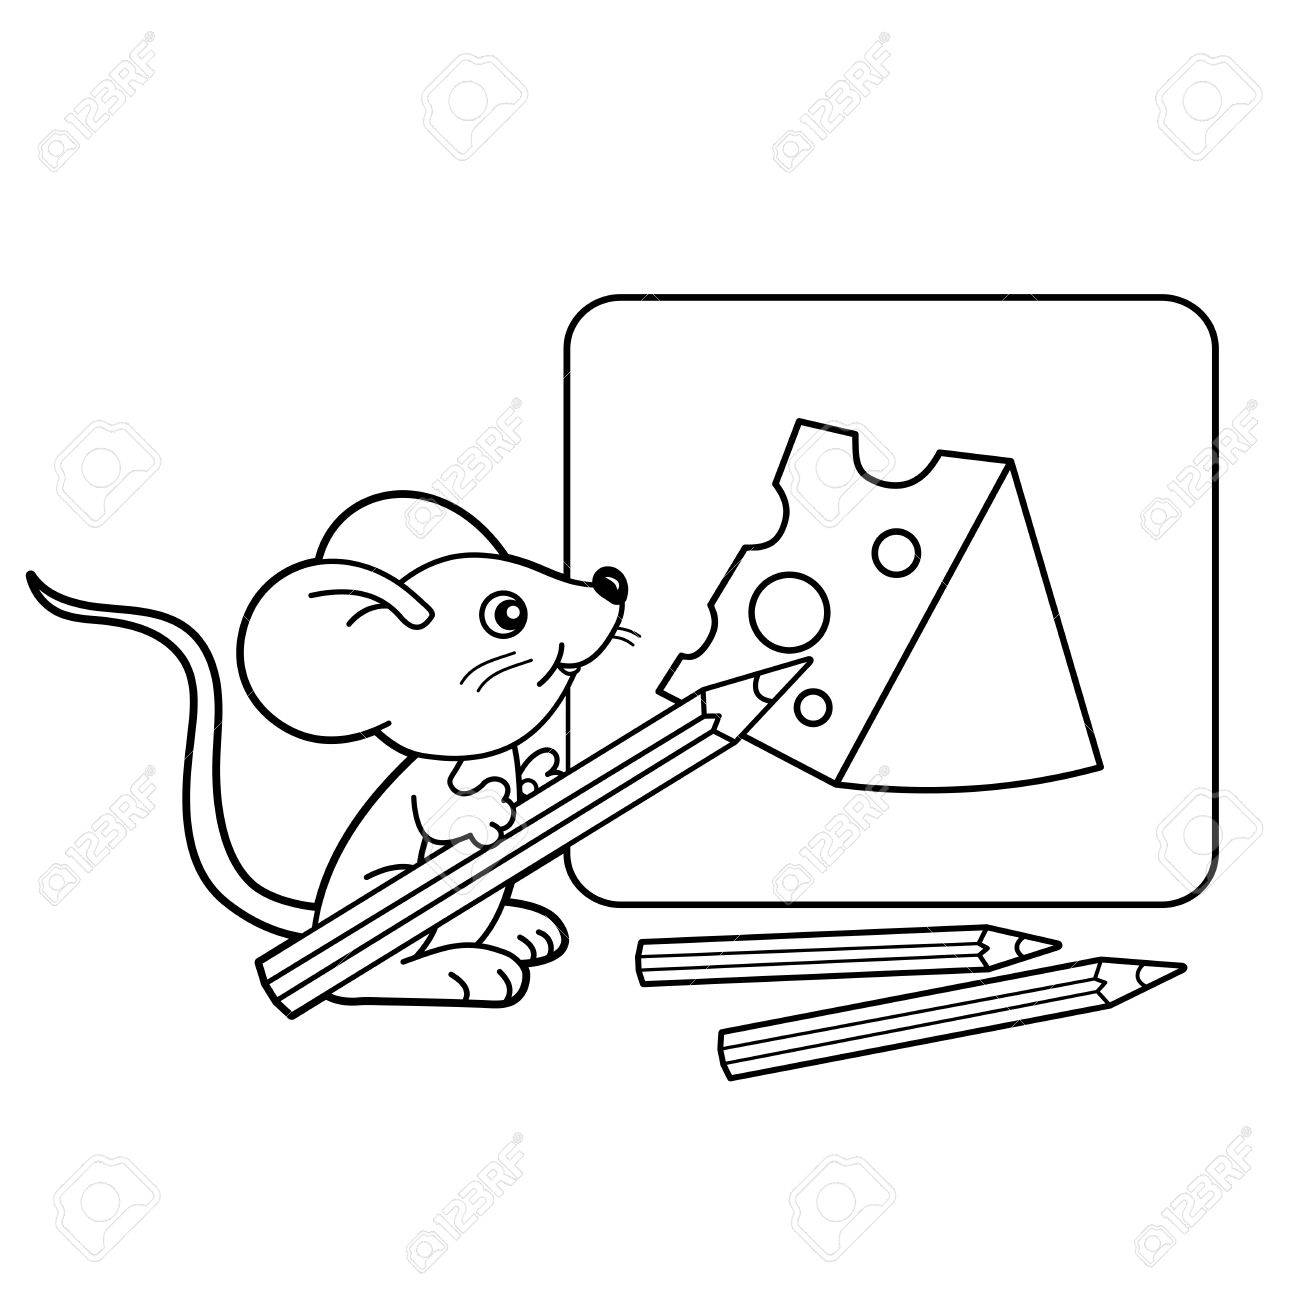 Coloring Page Outline Of Cartoon Little Mouse With Pencils Drawing Cheese Book For